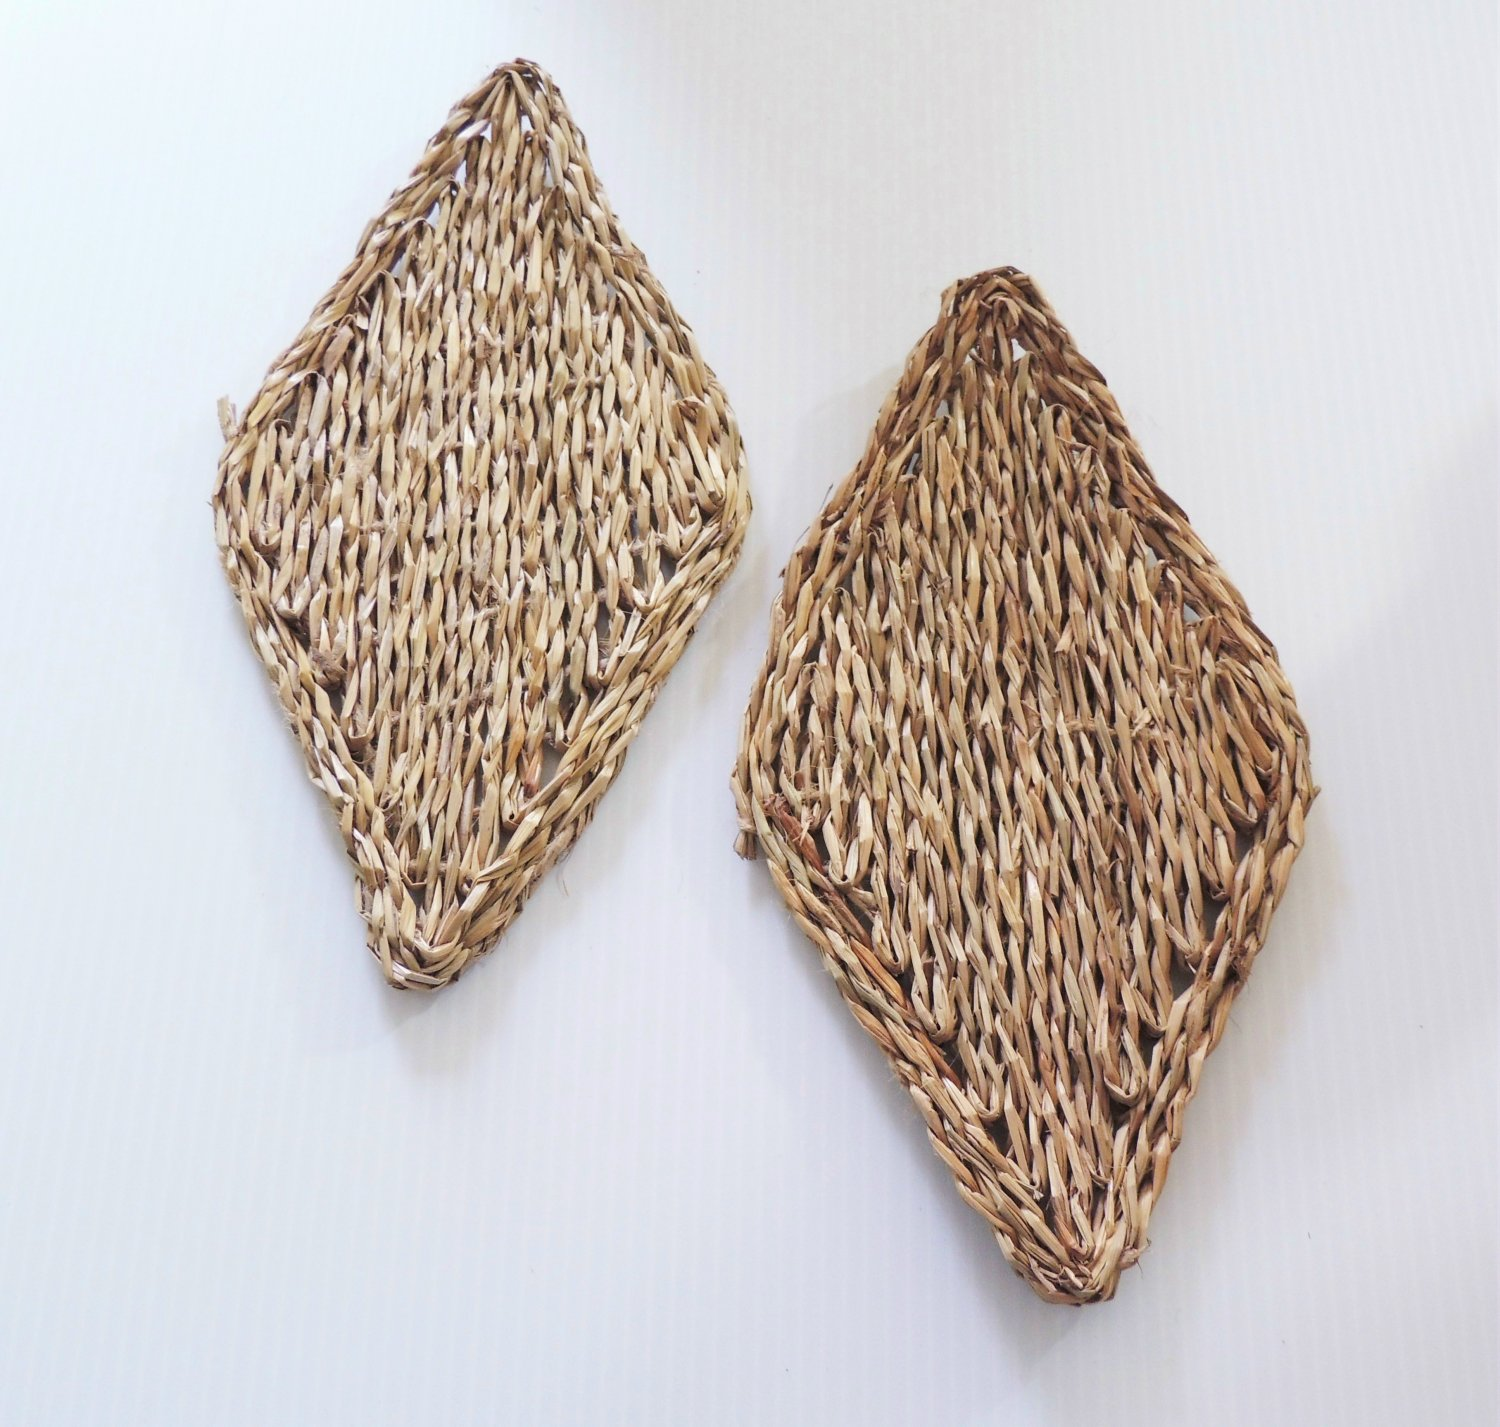 """11"""" SEAGRASS Mats (2) bird toys parrots cages parts crafts"""